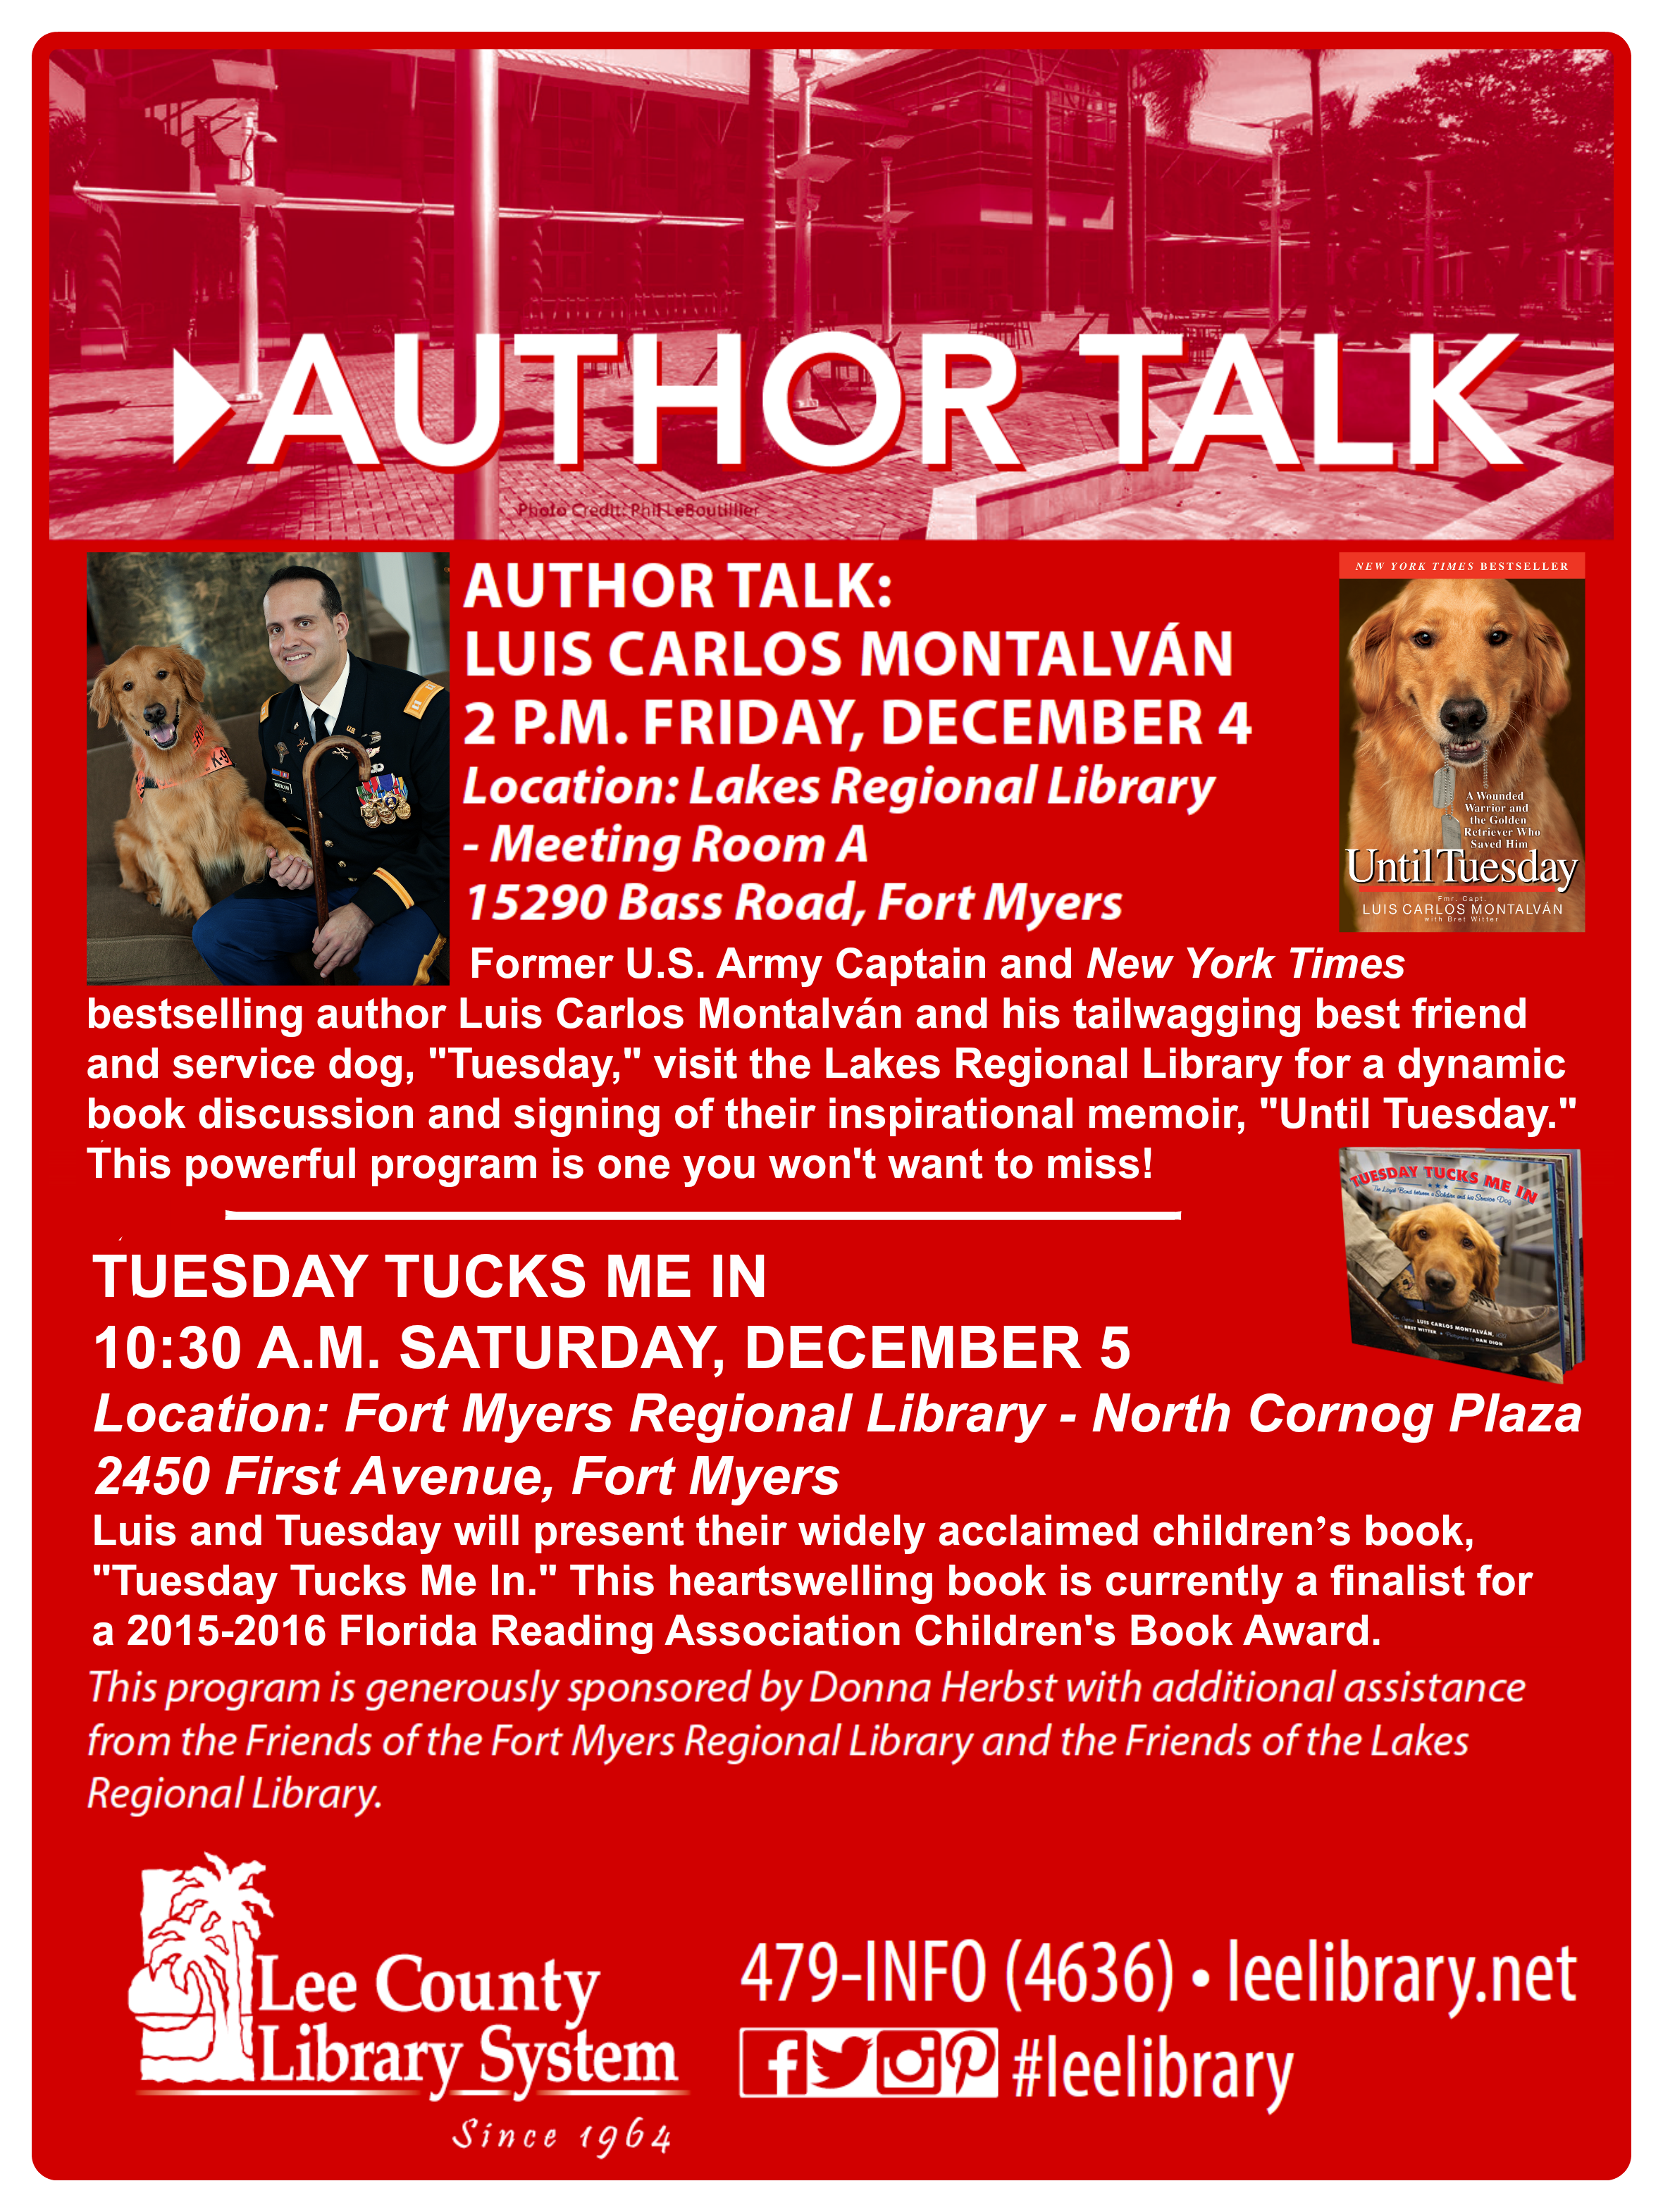 Tuesday And I Hope To See You And Yours For Some Tue Rrific Programs At These Branches Of The Lee County Fl Library Syste With Images Fort Myers Lee County Service Dogs